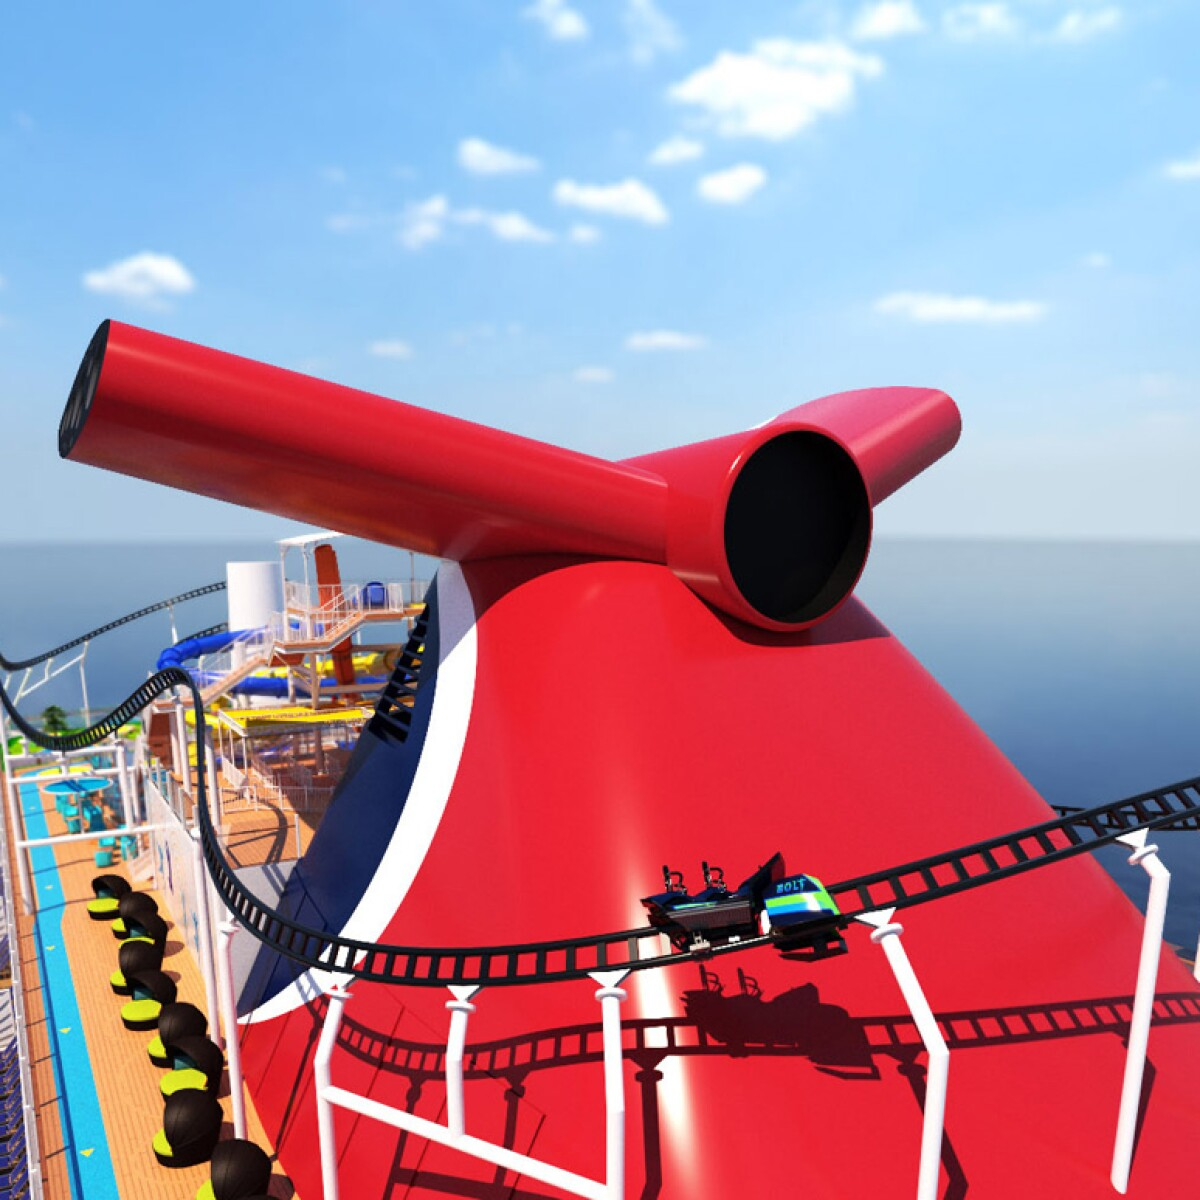 Carnival Announces Roller Coaster On New Cruise Ship